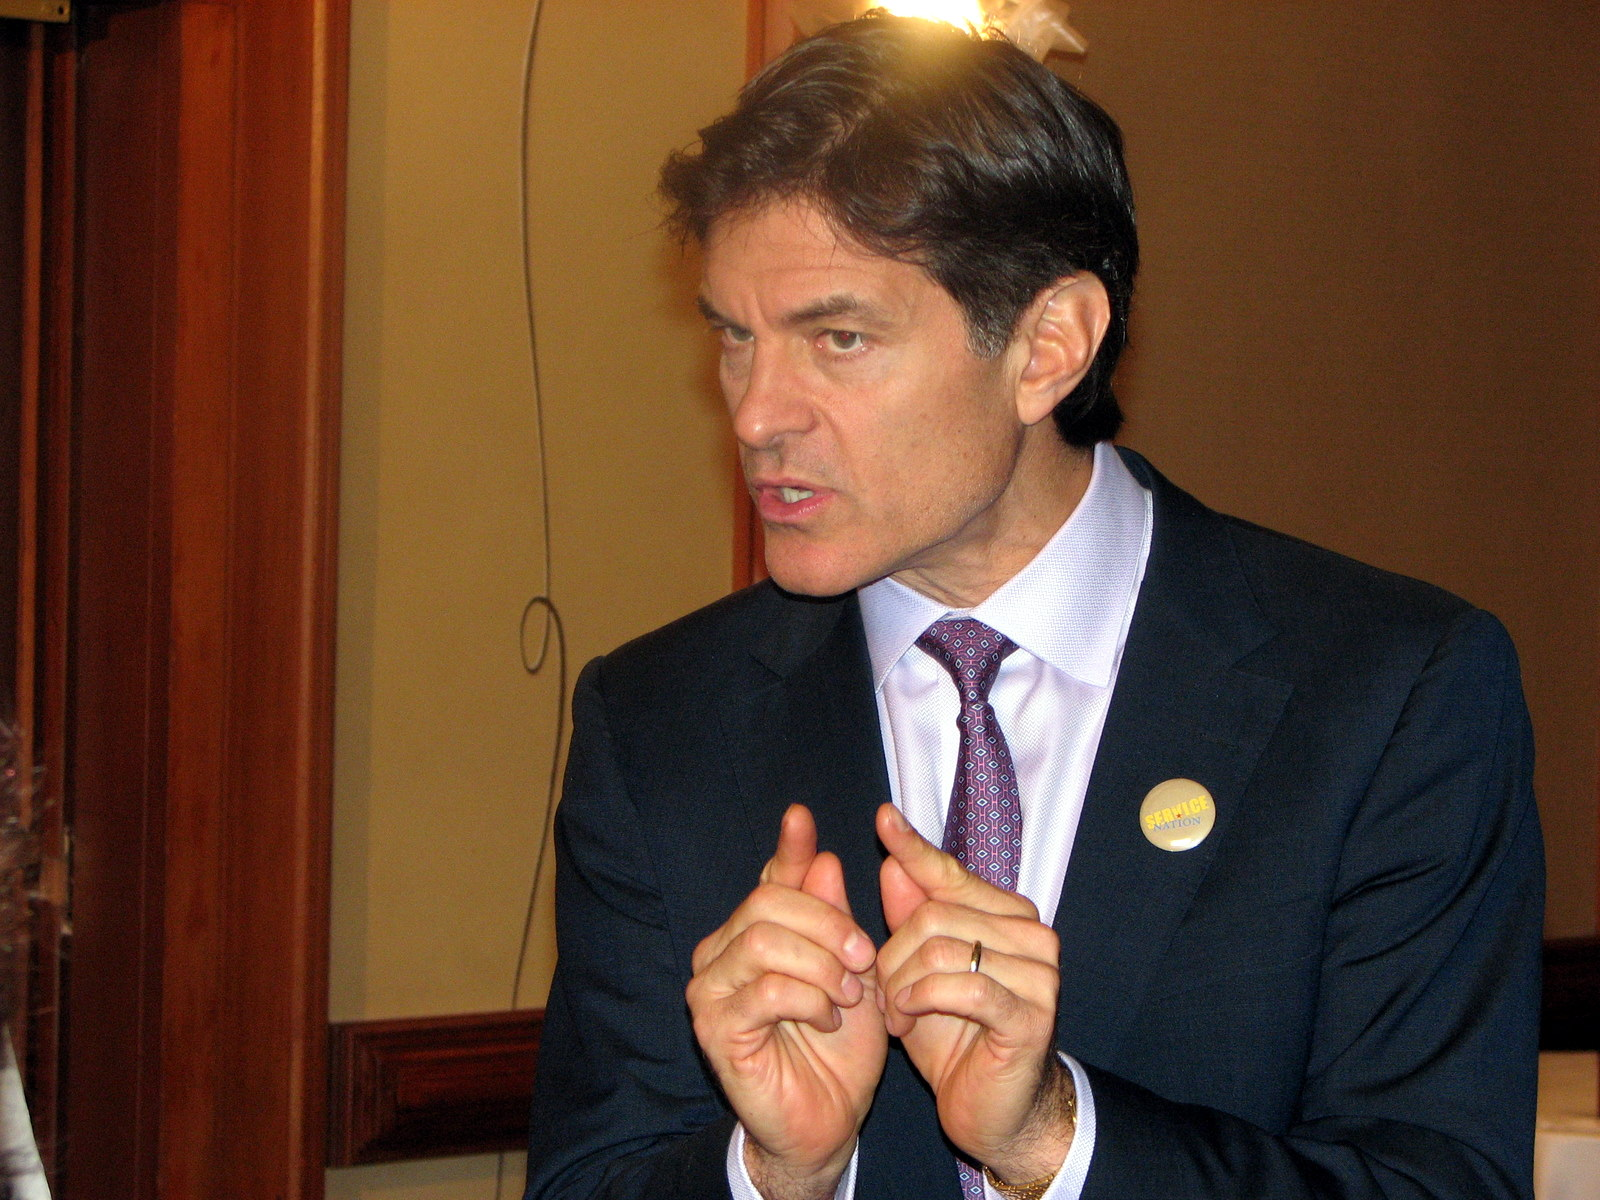 File:Dr. Oz at ServiceNation 2008.jpg - Wikipedia, the free ...